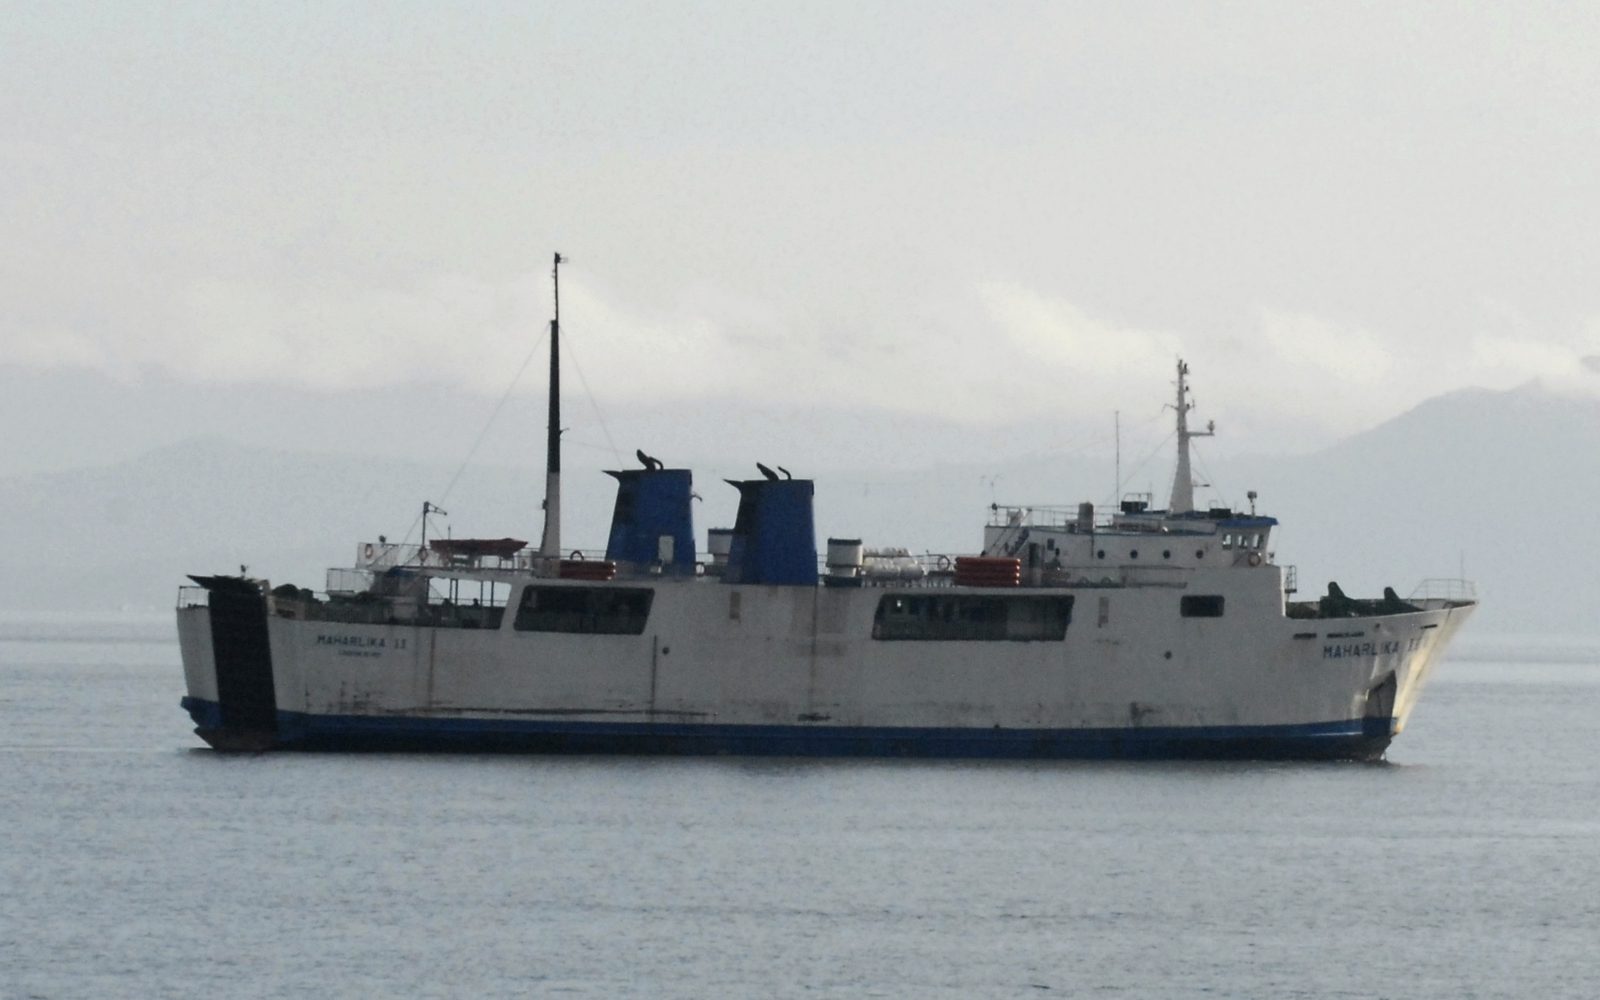 The ferry, MV Maharlika 2, with at least 84 passengers and crew onboard sank on September 13, 2014